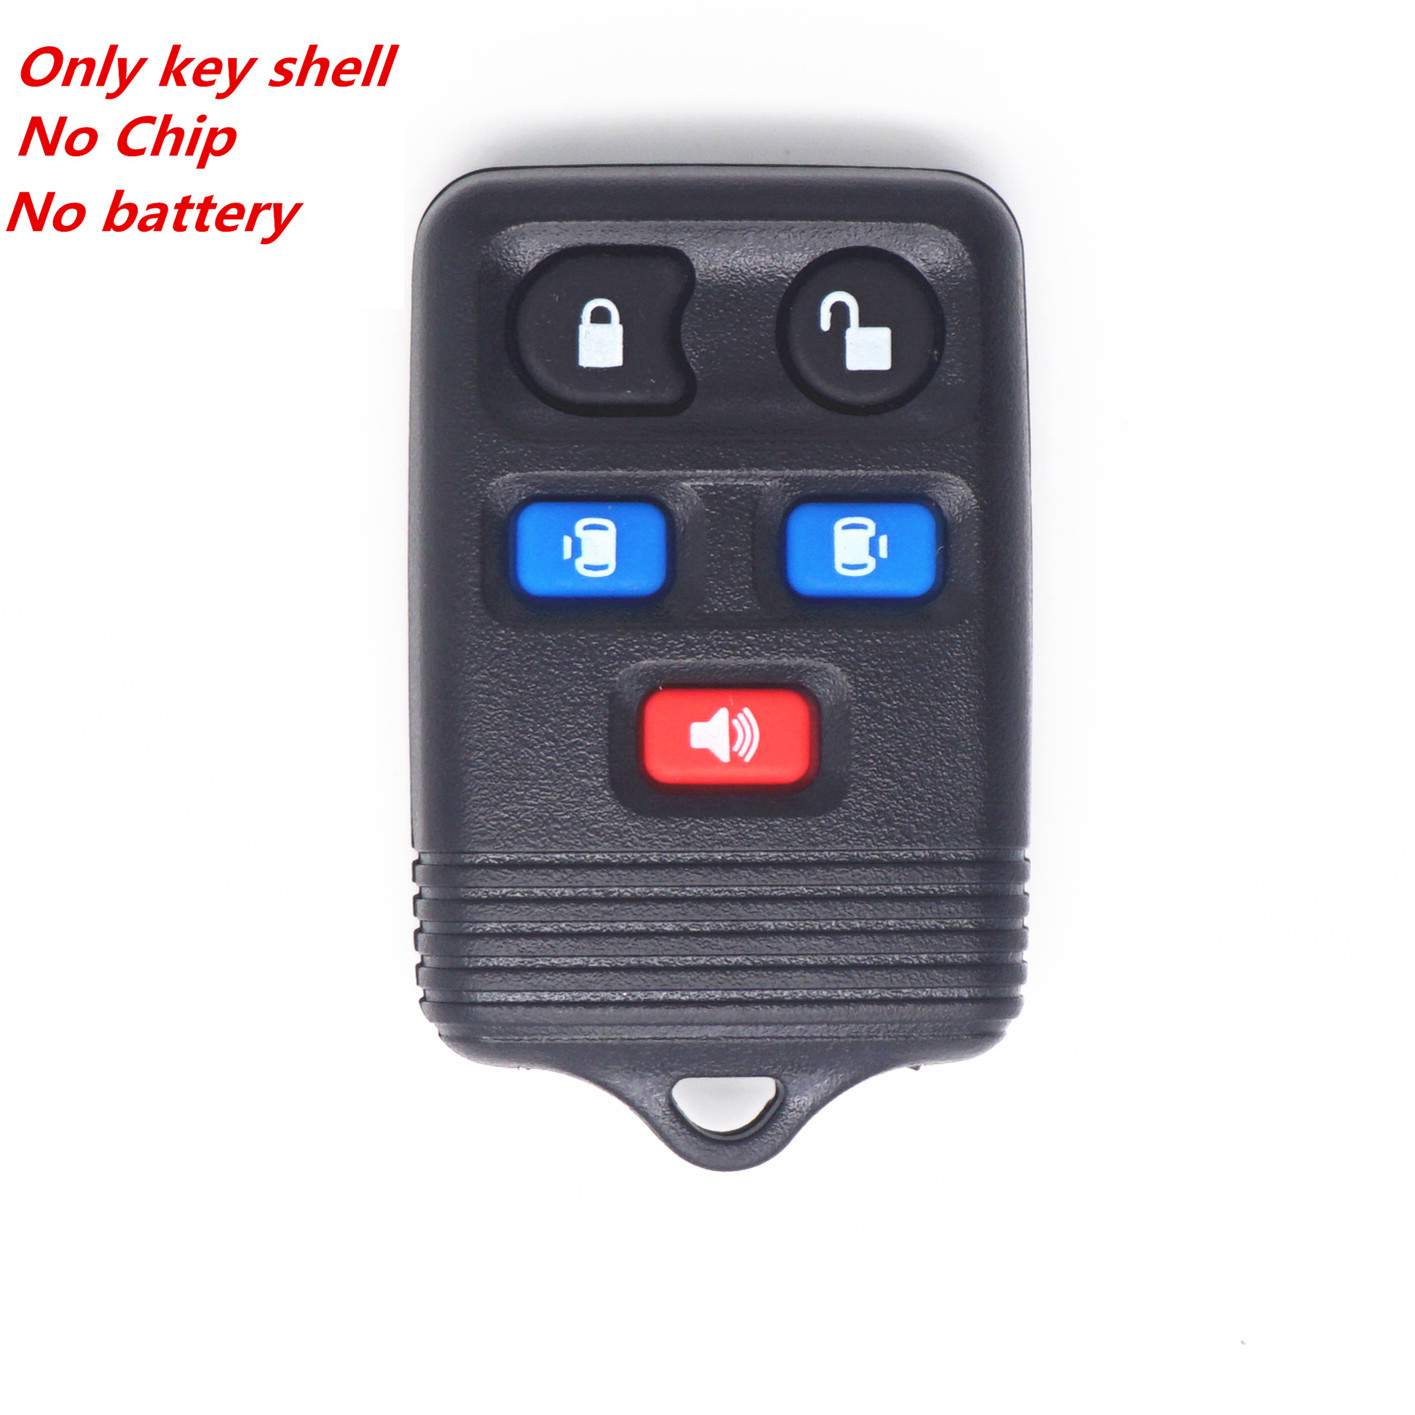 New 5 Buttons Remote Key Case Shell For Ford Freestar Expedition Mercury Lincoln